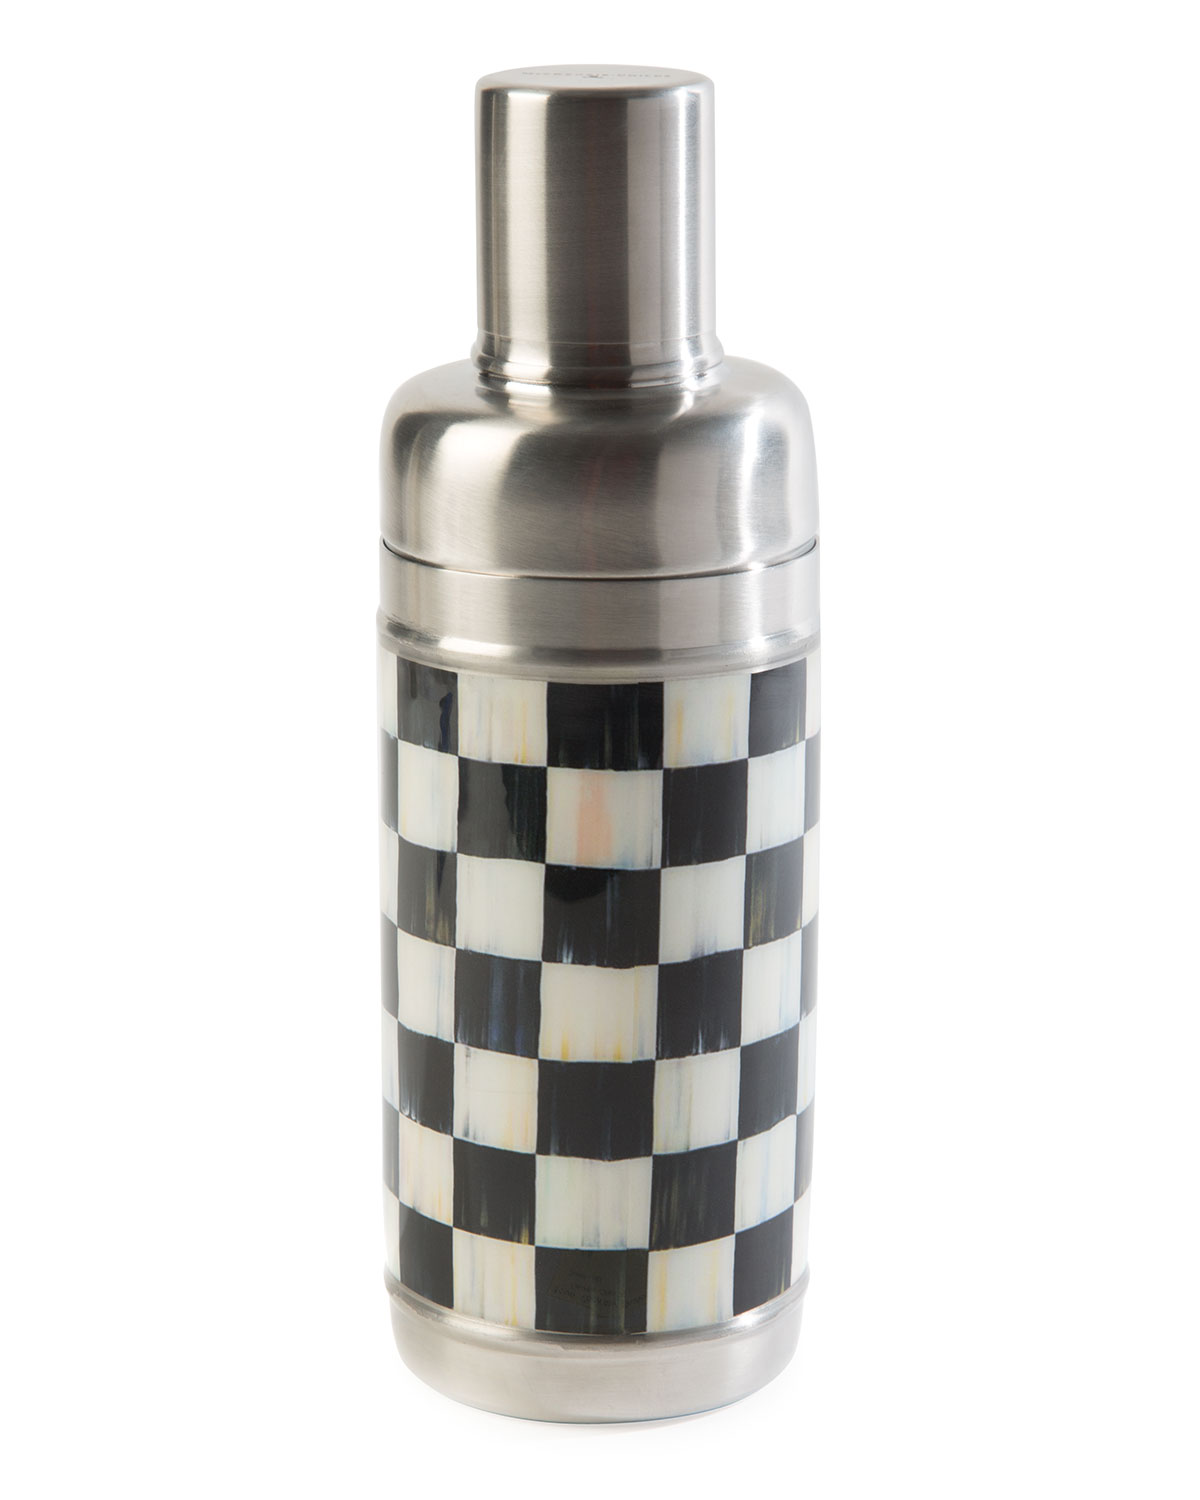 MacKenzie-Childs Courtly Check Cocktail Shaker